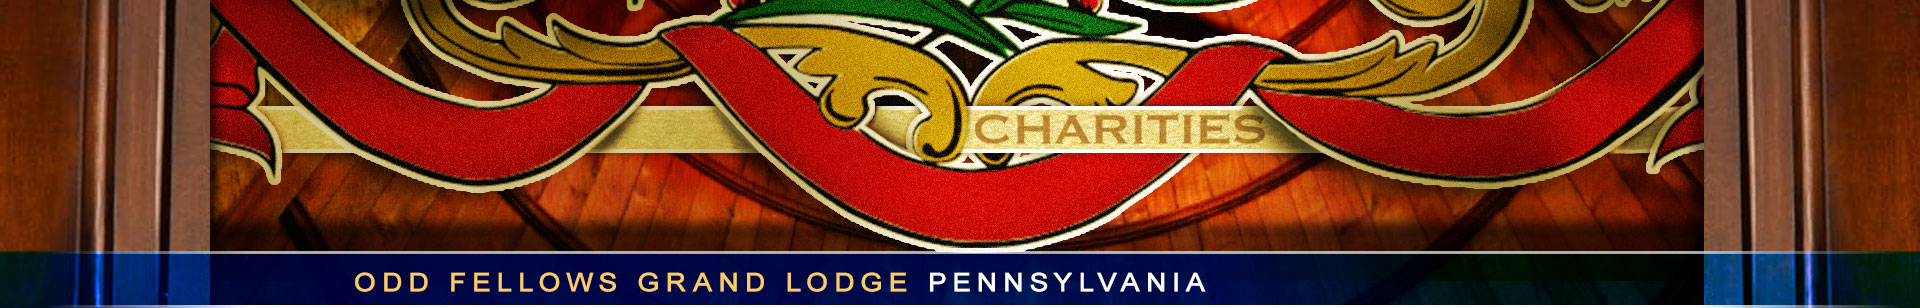 IOOF Grand Lodge of Pennsylvania – Charities